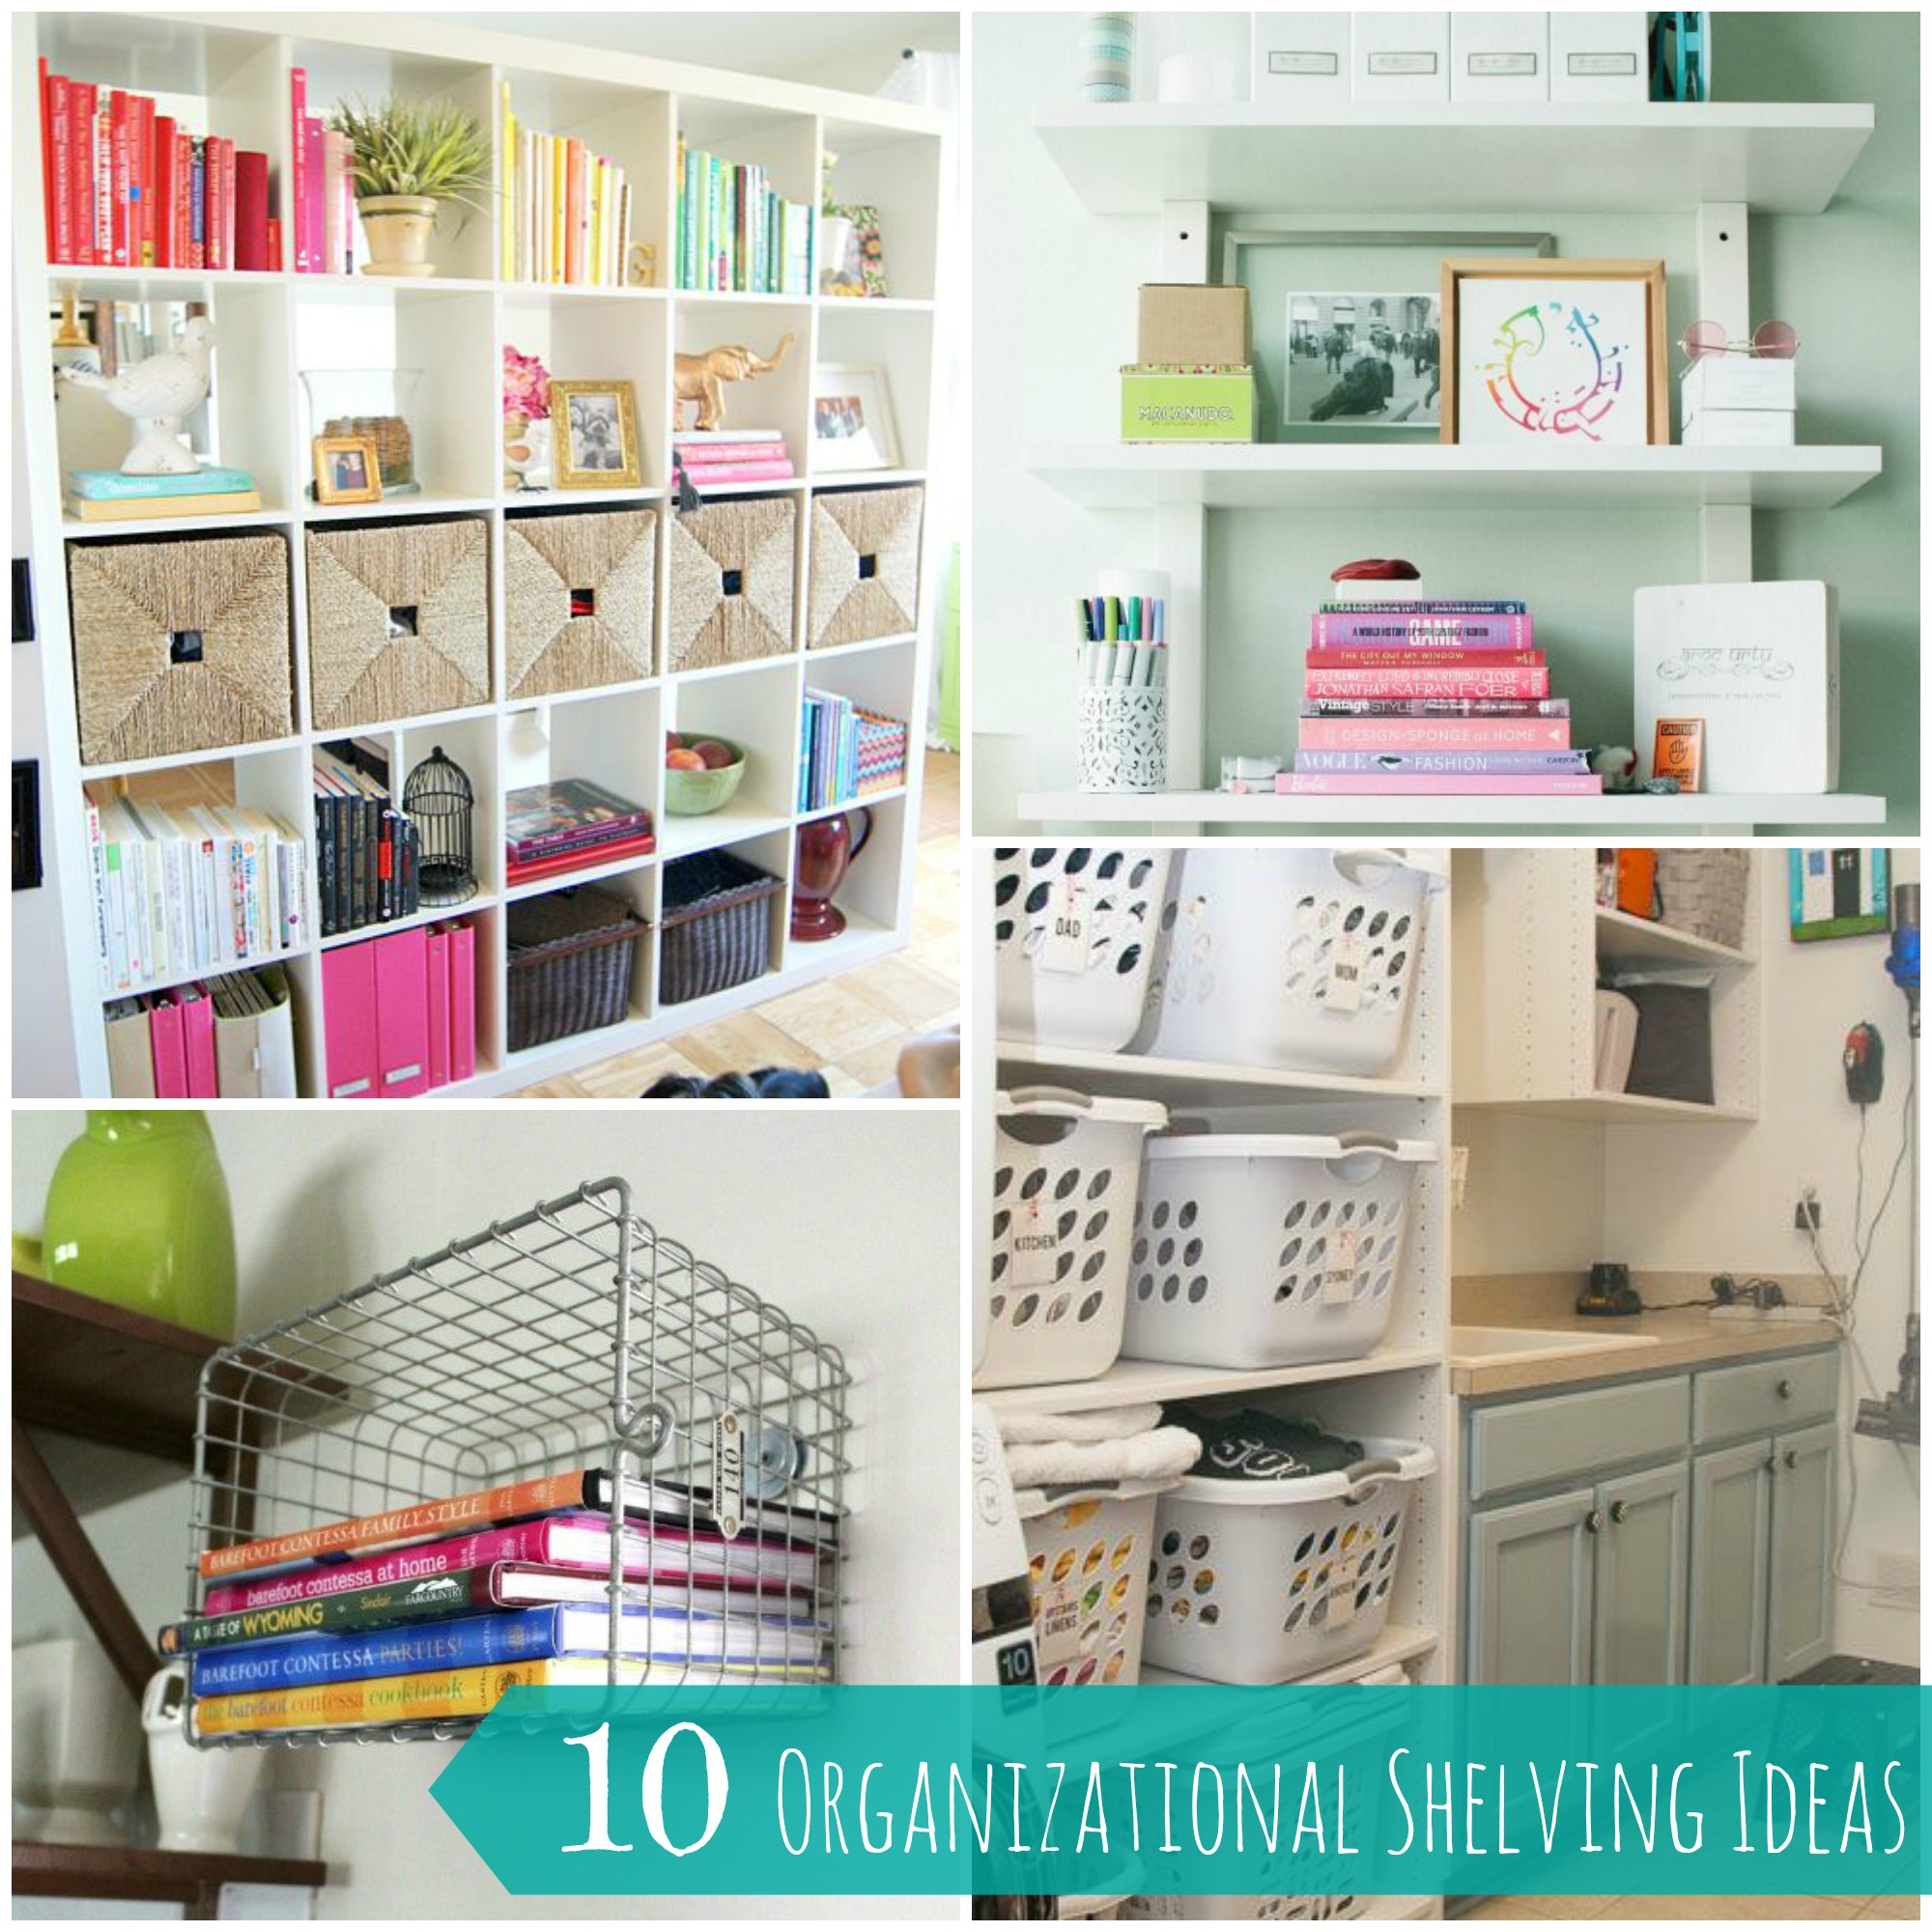 10 easy and creative shelving organization ideas for your home for Creative shelf ideas